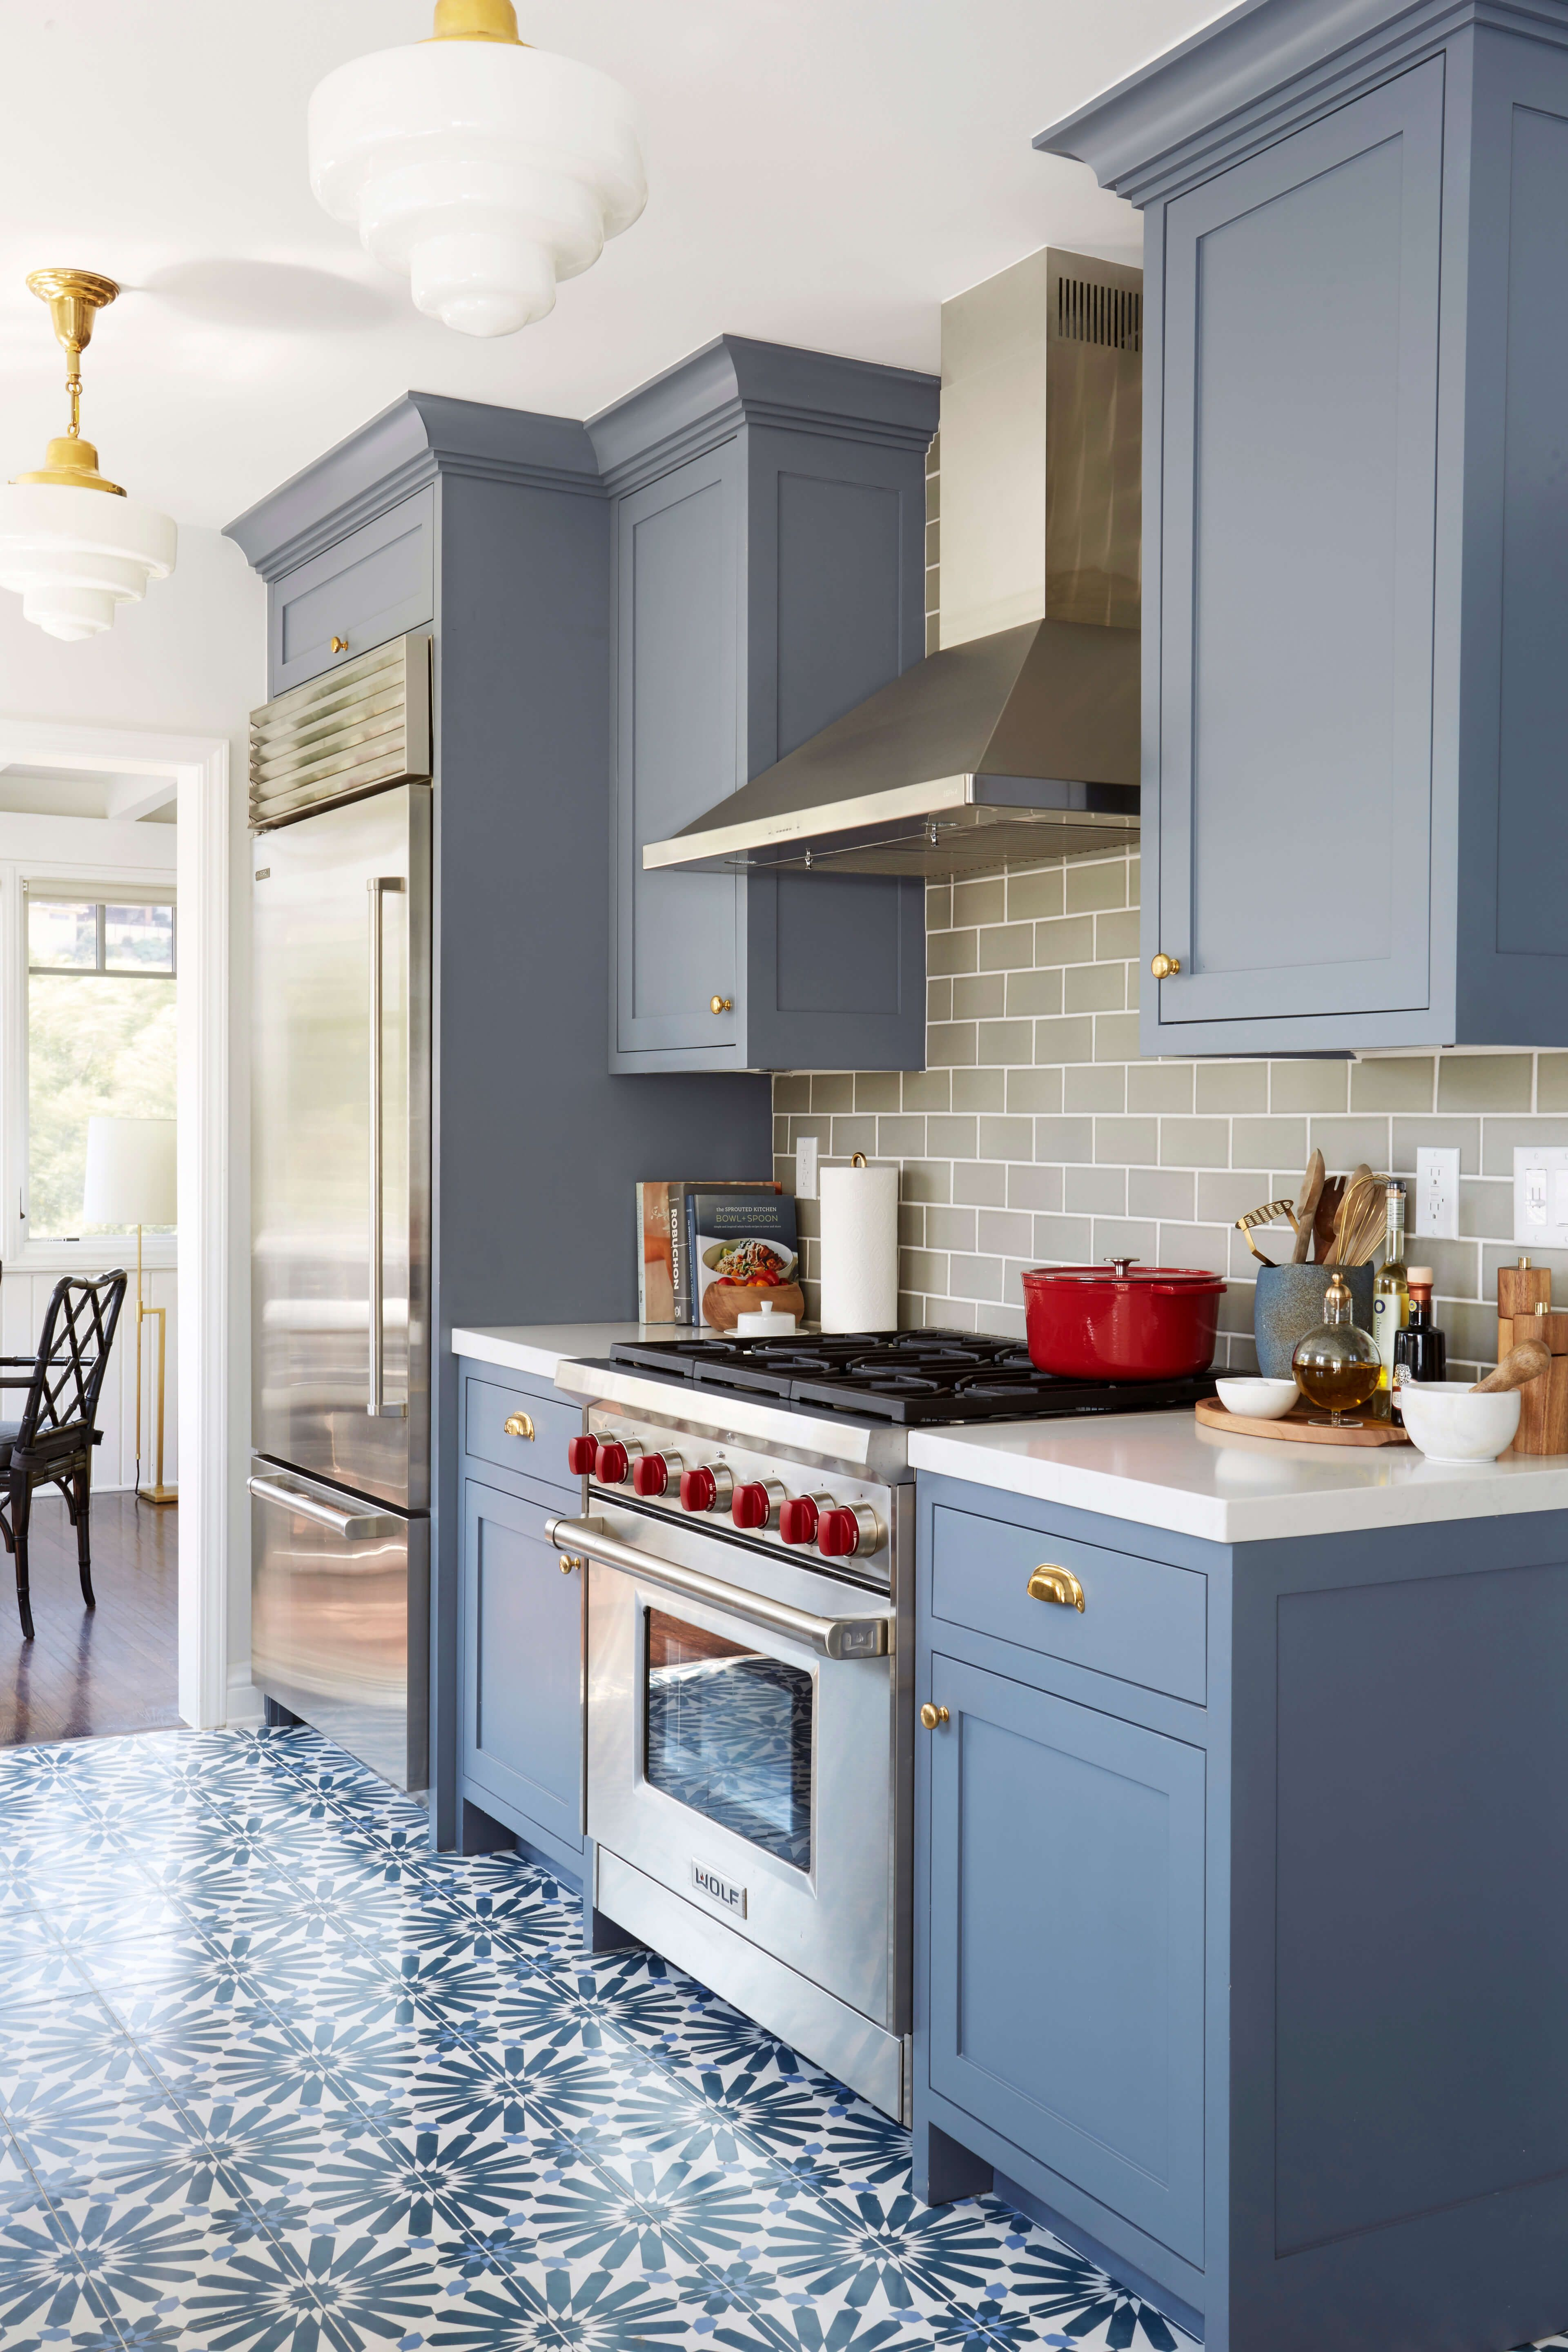 Gray Kitchen Cabinets Benjamin Moore Modern Deco Kitchen Reveal Traditional Taste Blue Kitchen